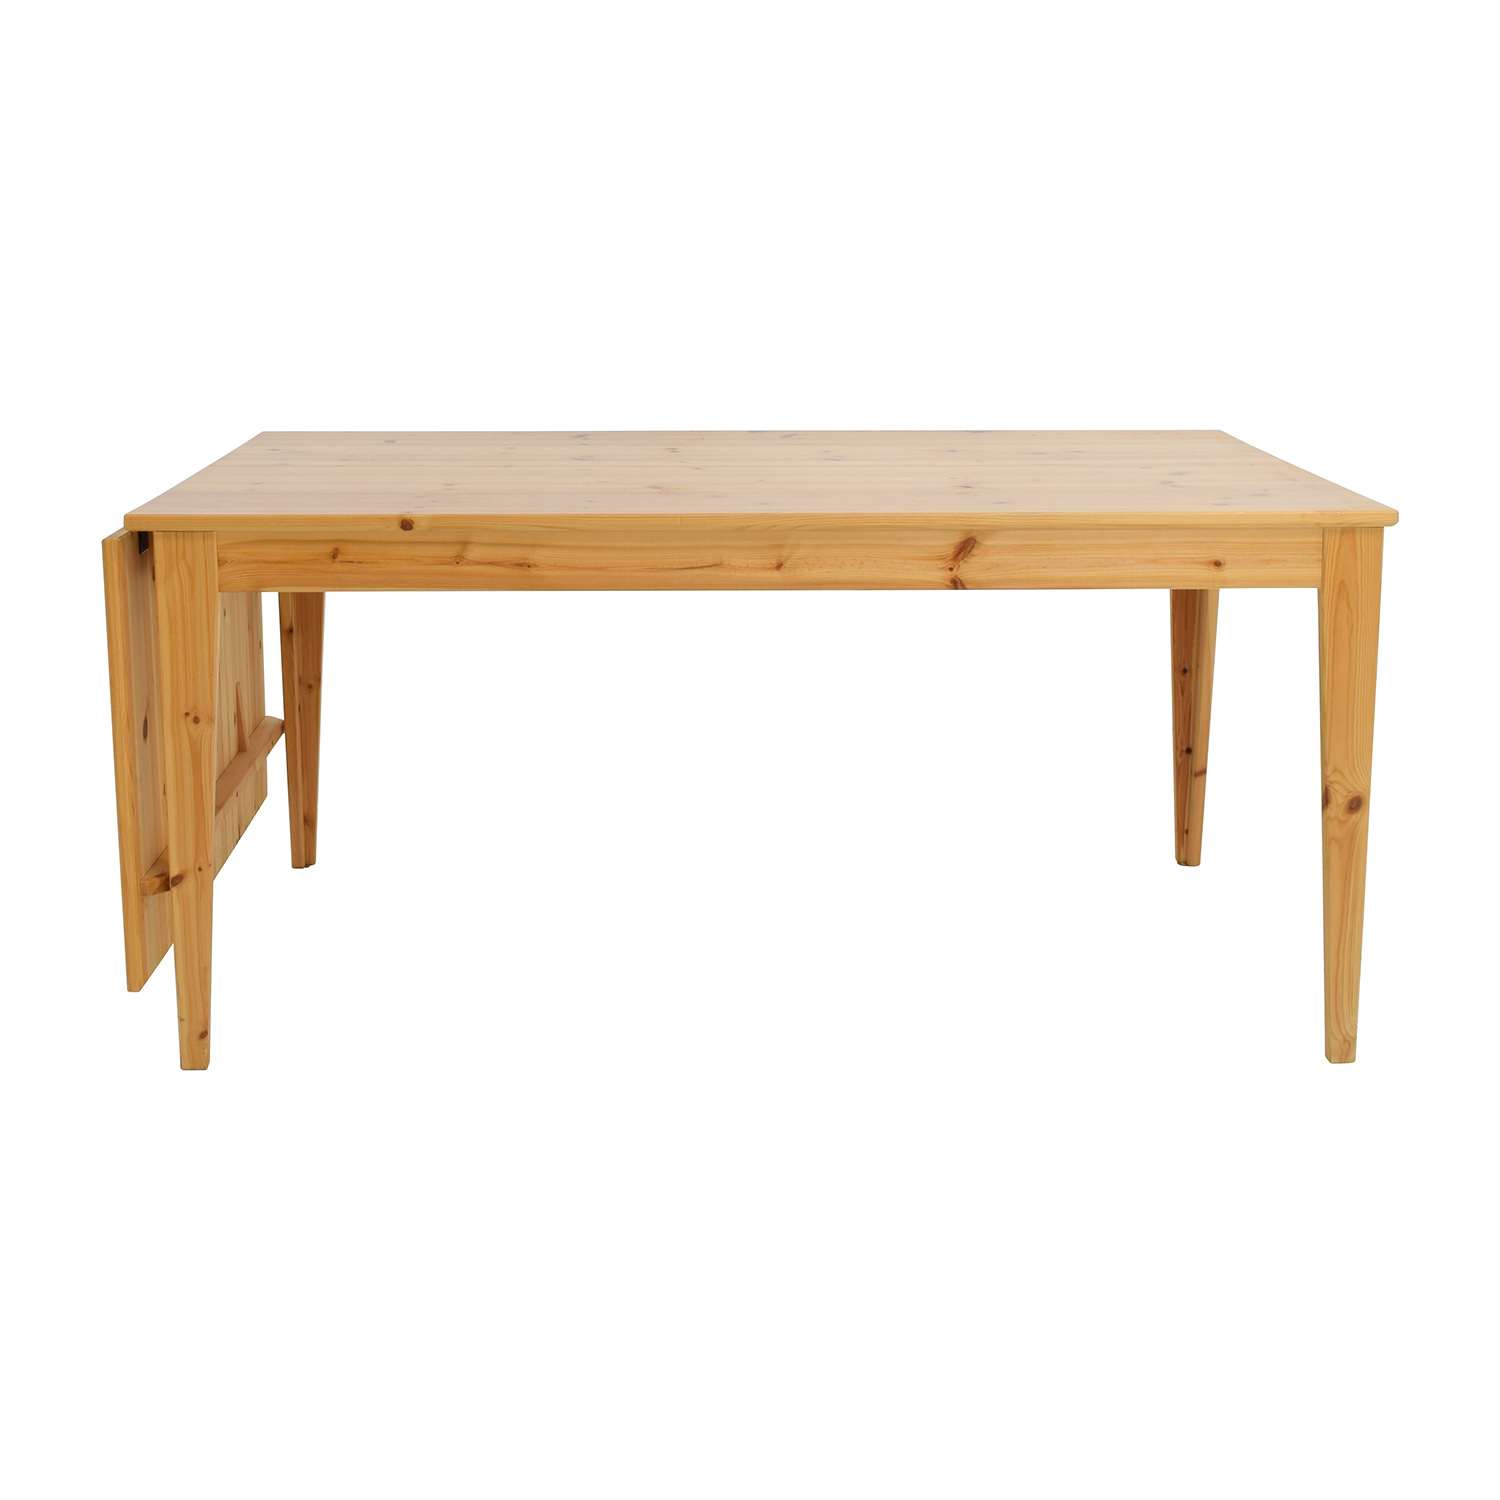 Ikea Normas Pine Wood Drop Leaf Table Dinner Tables